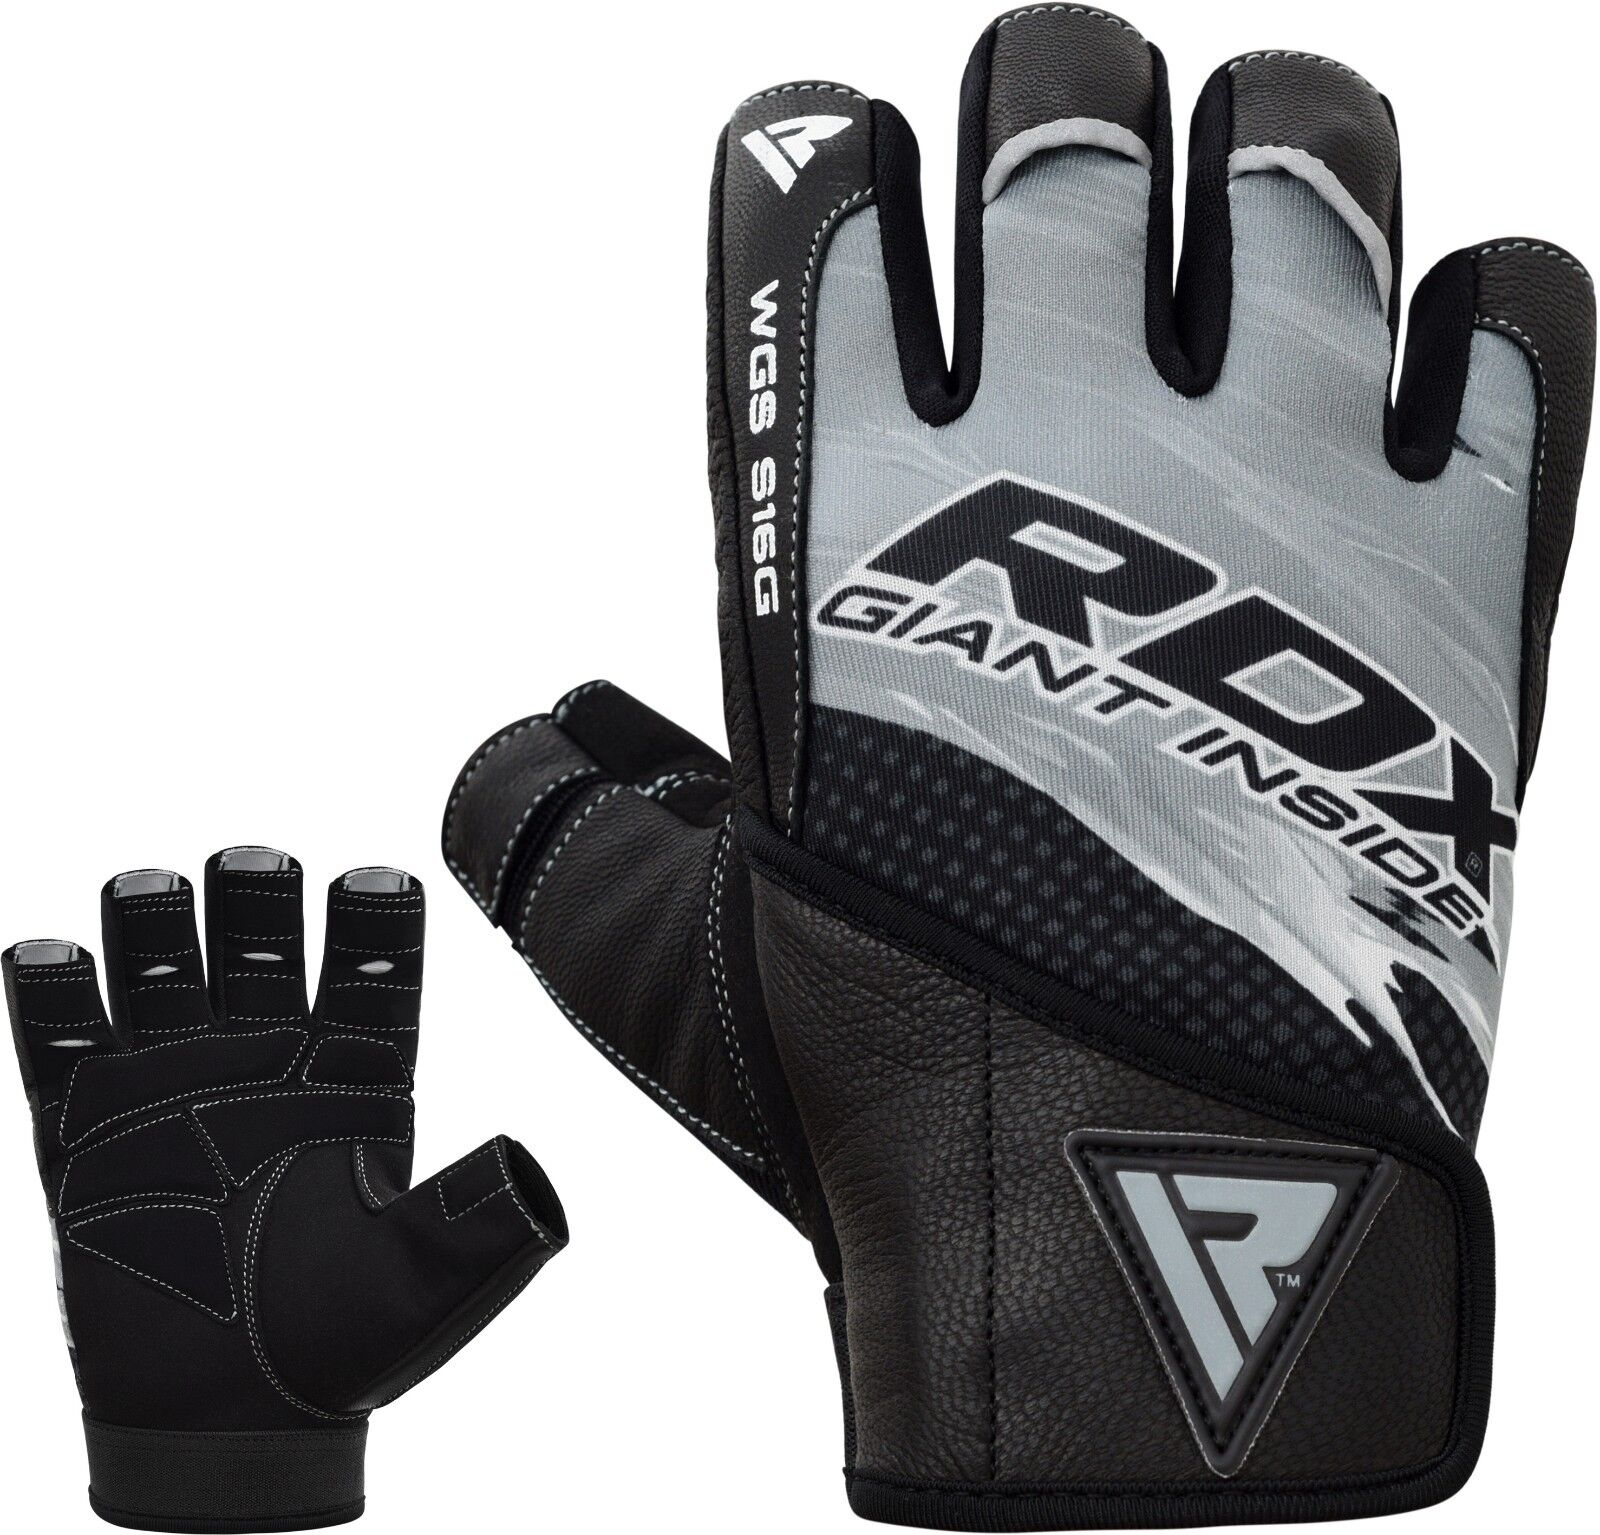 Weight Lifting Gloves Leather Fitness Gym Training Workout: RDX LEATHER WEIGHT Lifting Gym Gloves Training Fitness